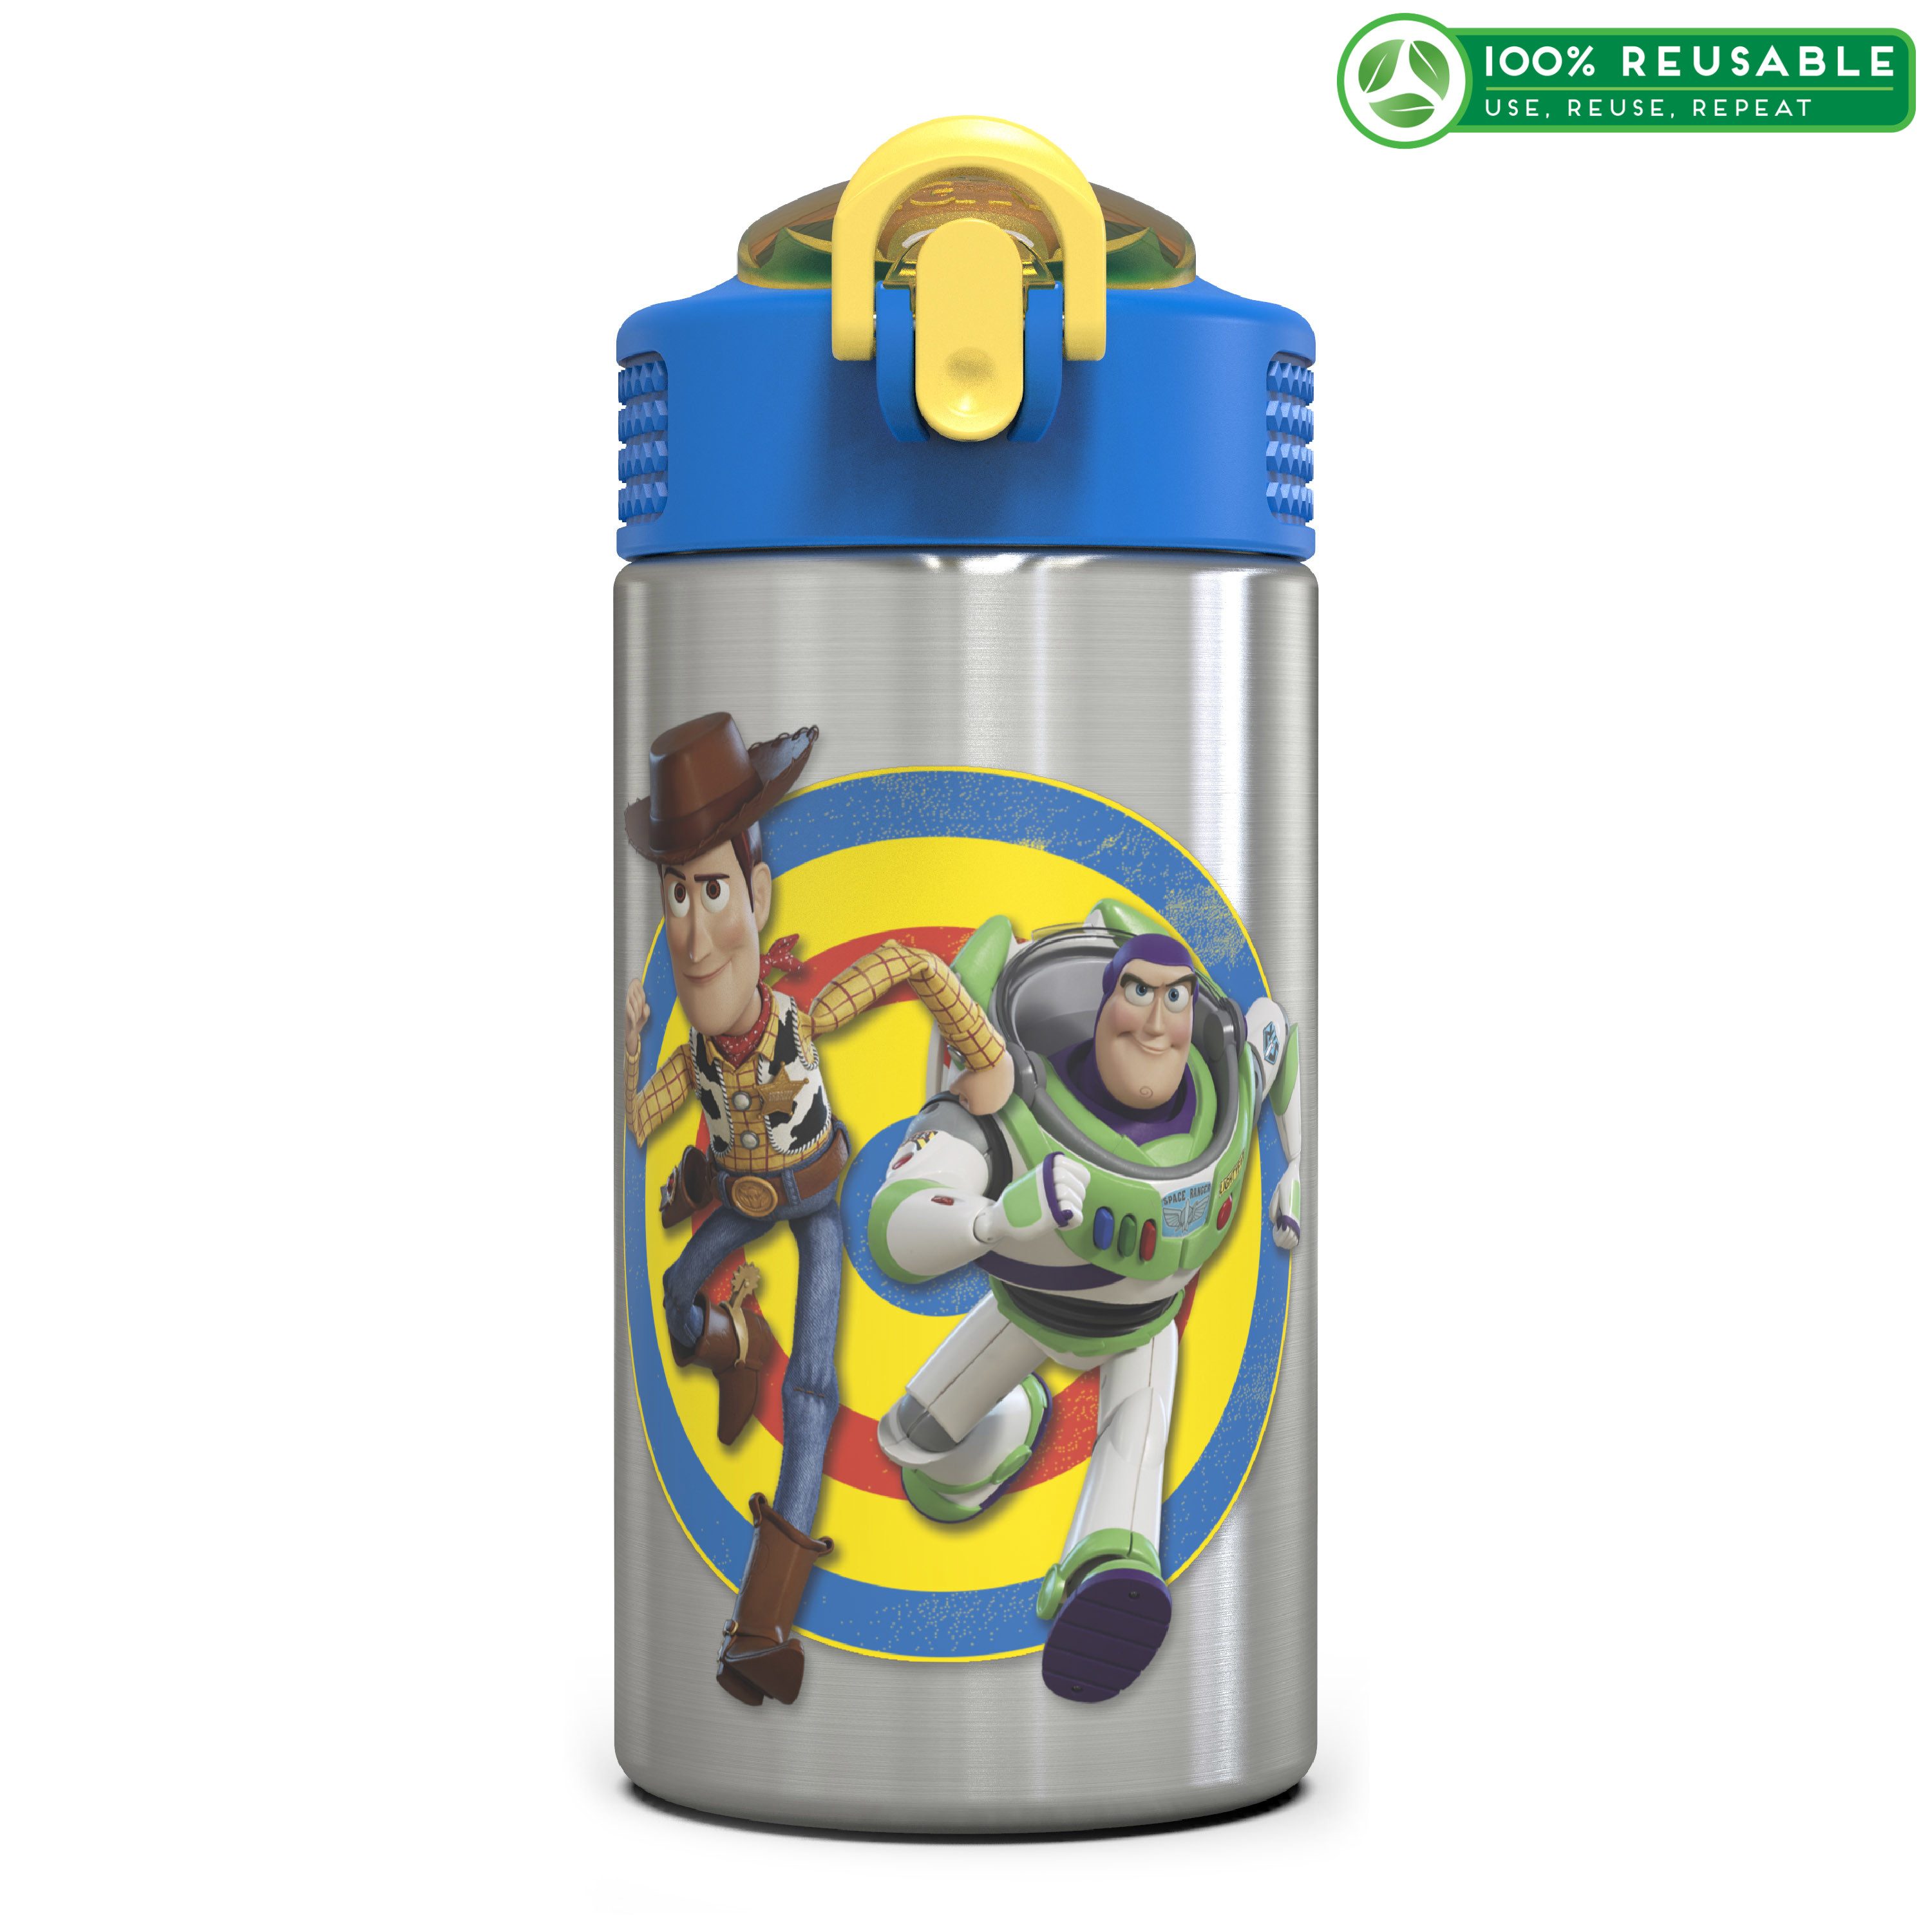 Toy Story 4 15.5 ounce Water Bottle, Buzz & Woody slideshow image 1